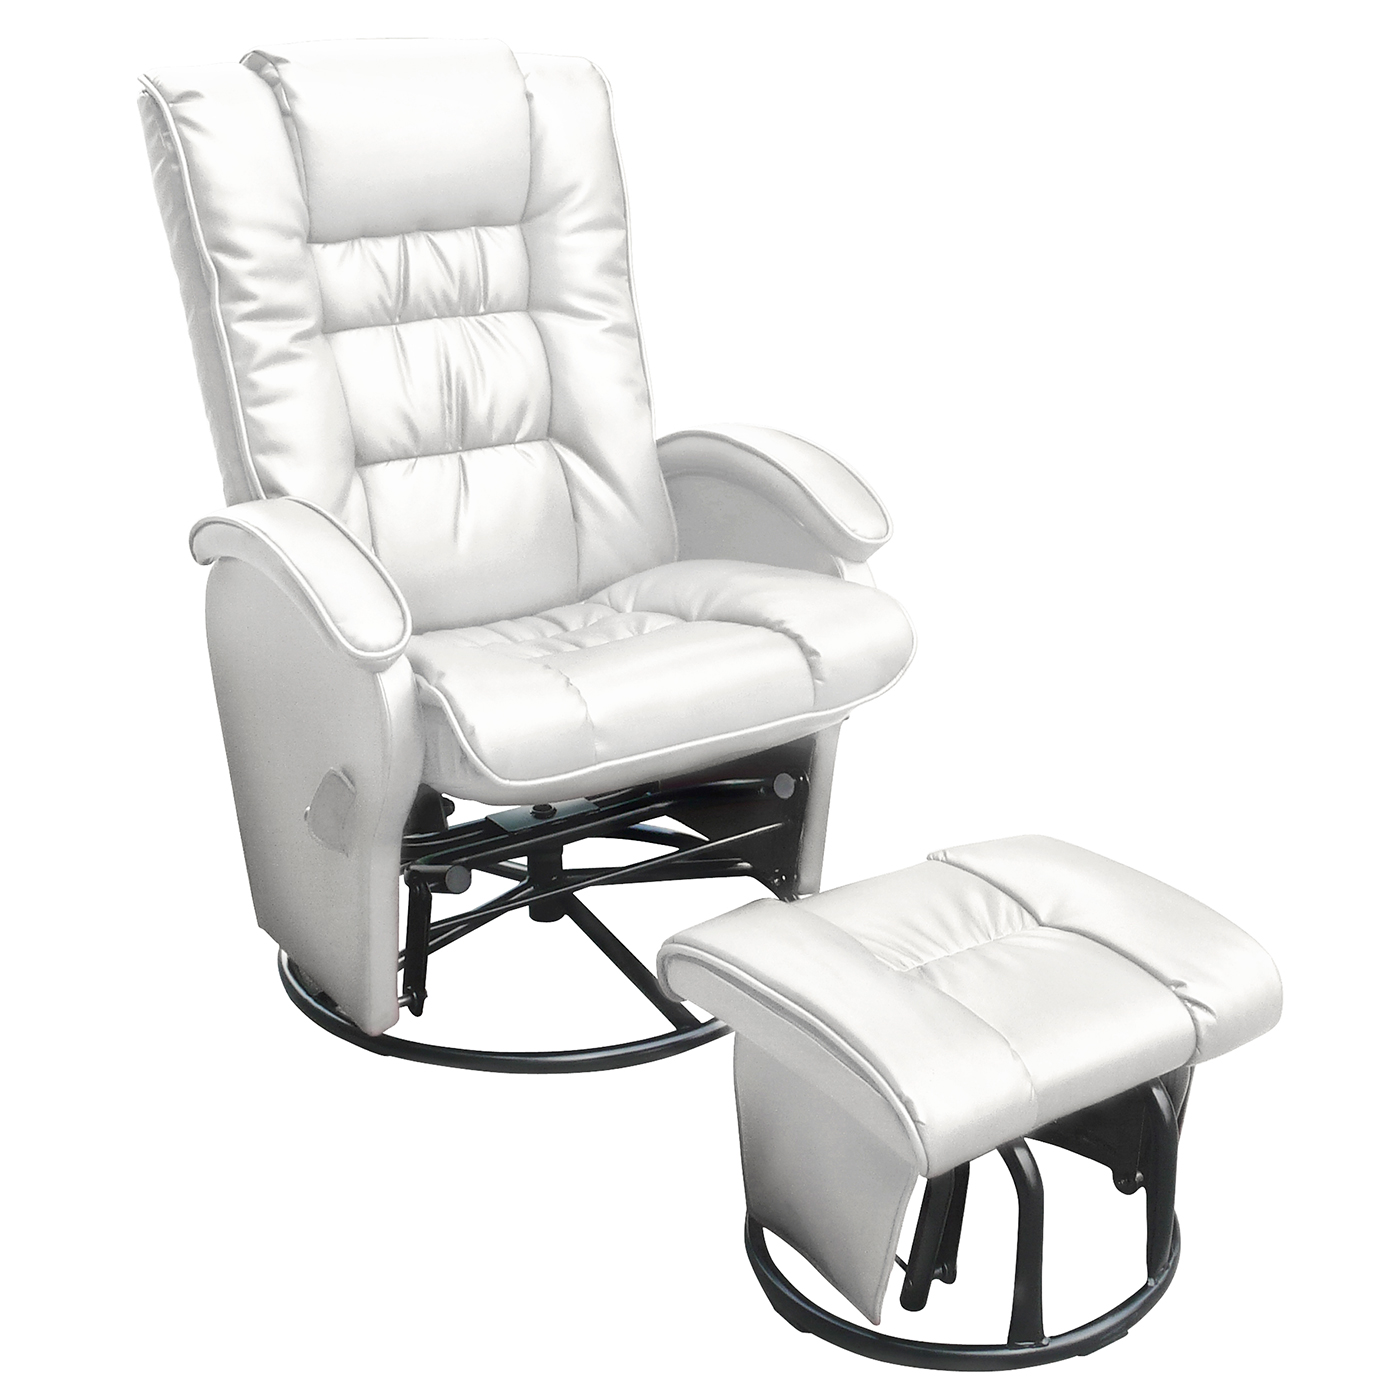 Dezmo Push Back Bonded Leather Recliner Glider Rocker with Swivel and Ottoman in White FREE SHIPPING  sc 1 st  Simply Baby Furniture & Dezmo Push Back Bonded Leather Recliner Glider Rocker with Swivel ... islam-shia.org